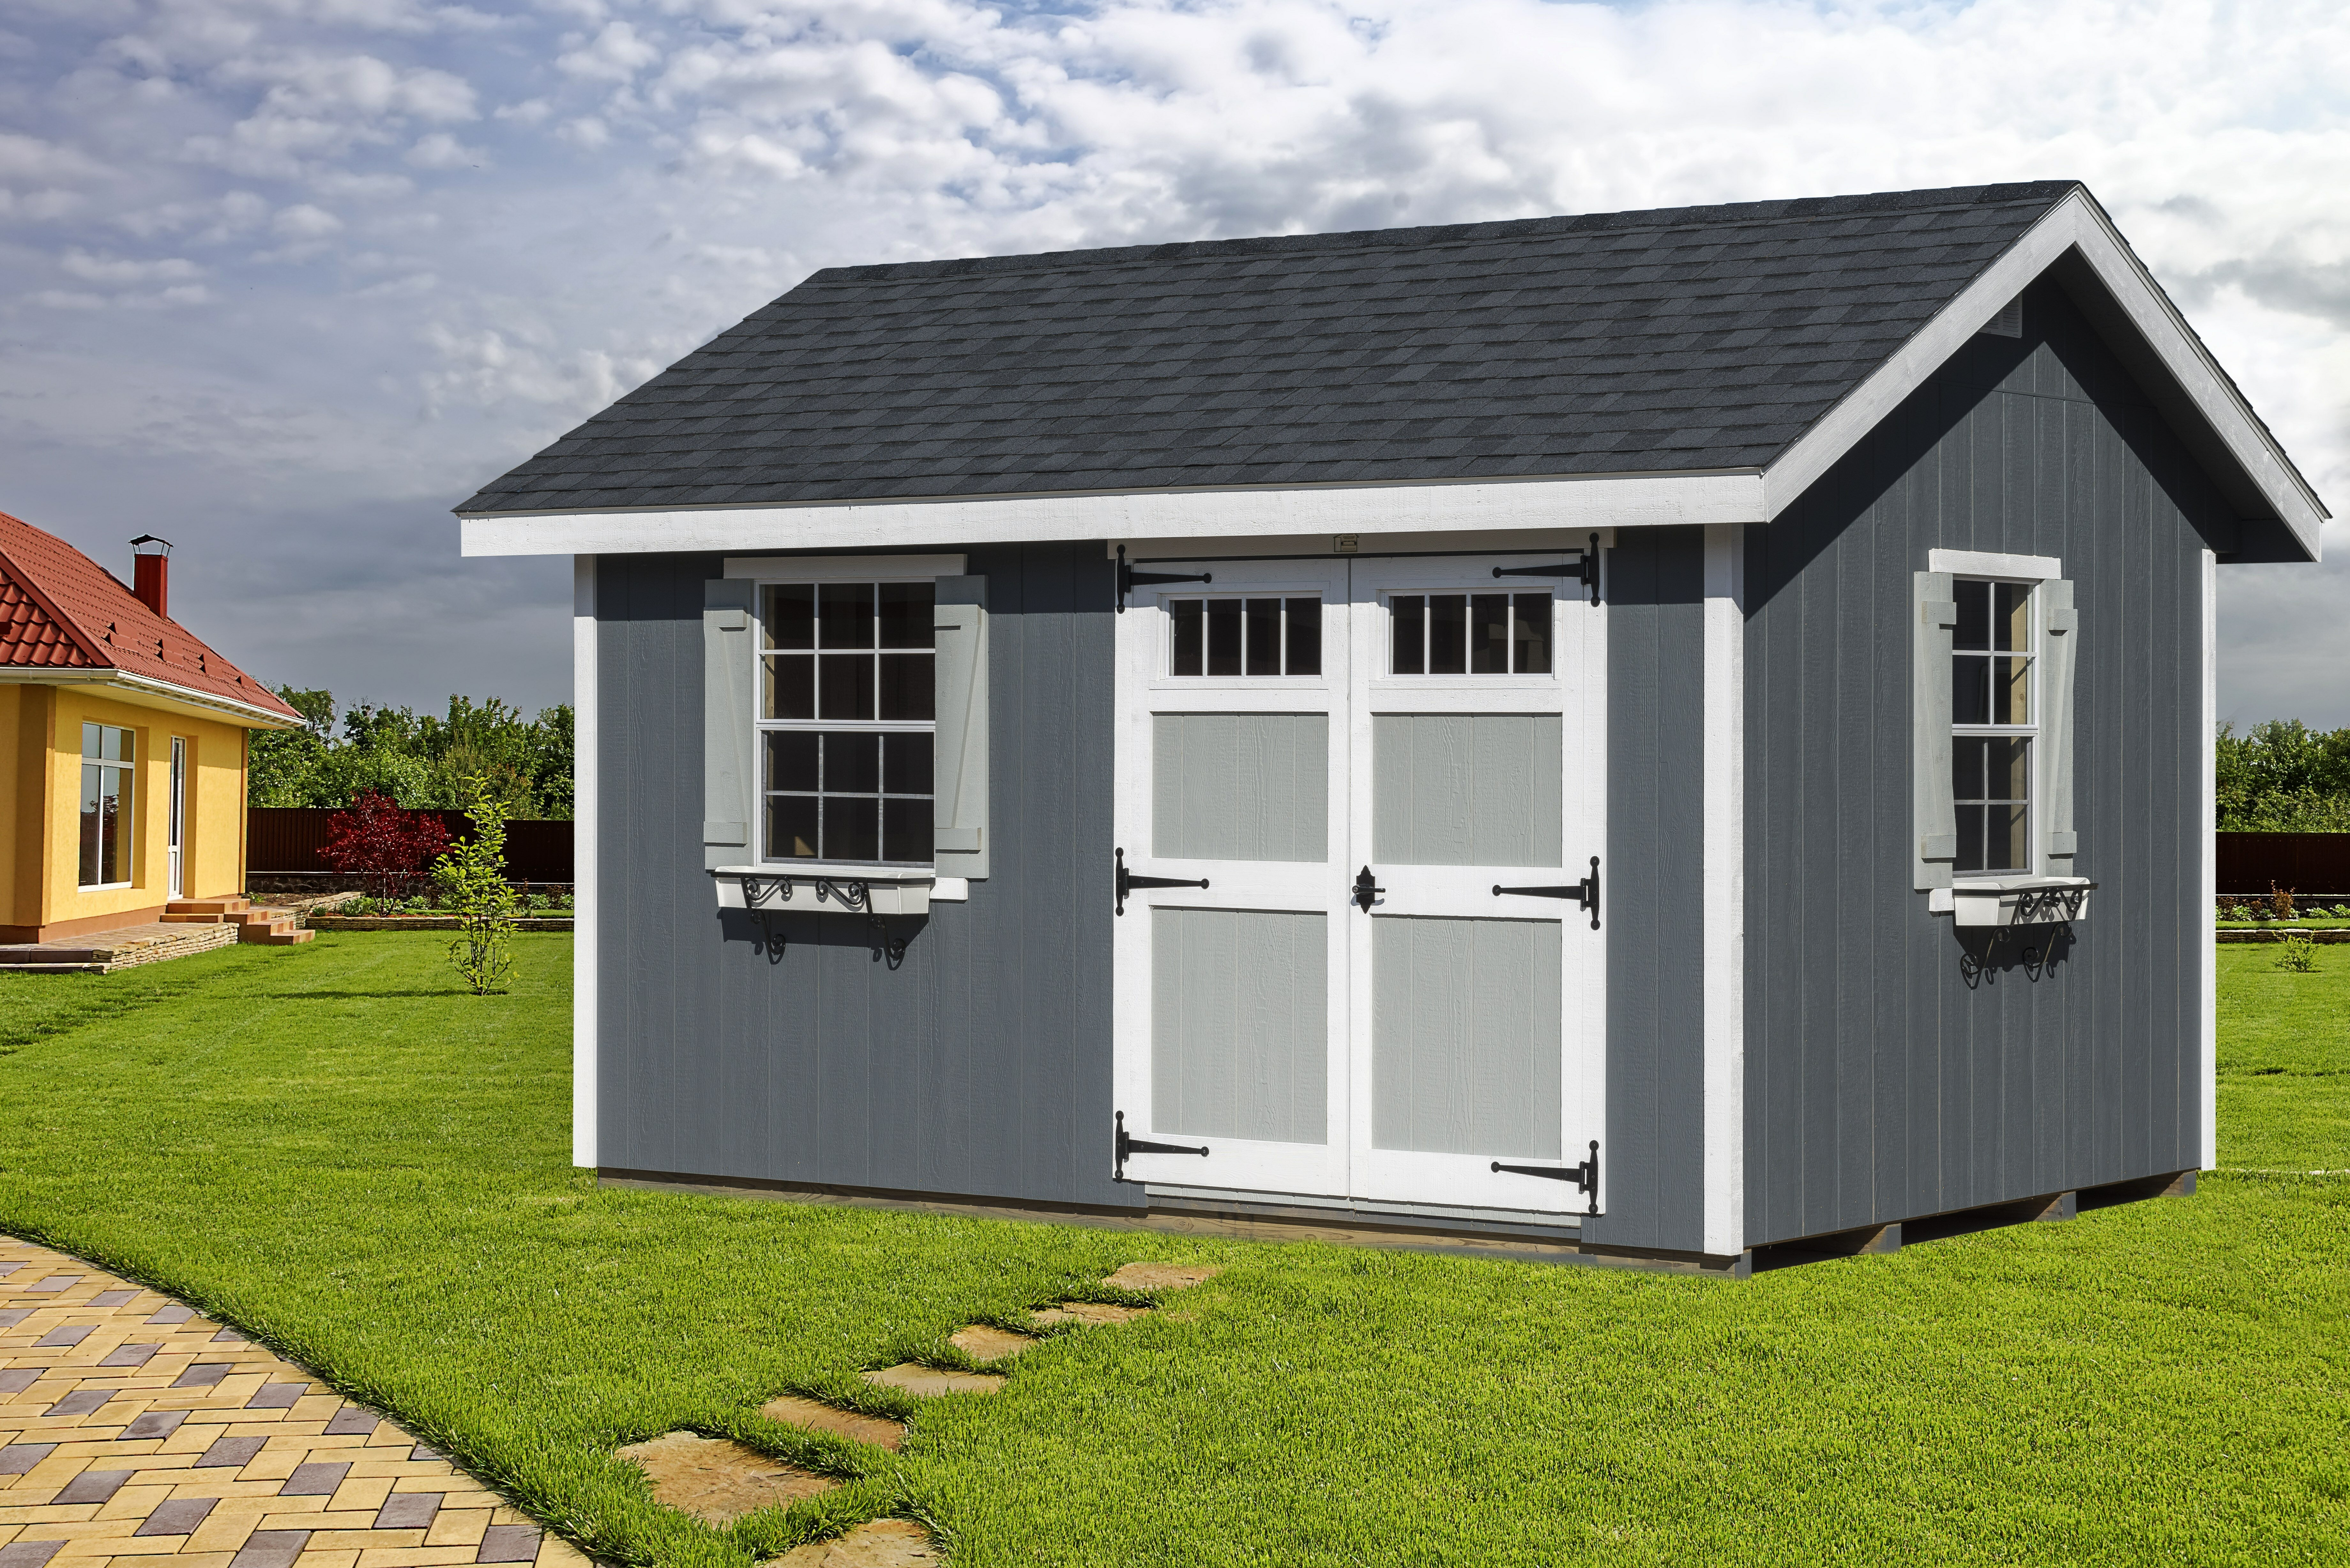 Alpine Structures Heritage 14 Ft. W X 10 Ft. D Wooden Horizontal Storage  Shed | Wayfair